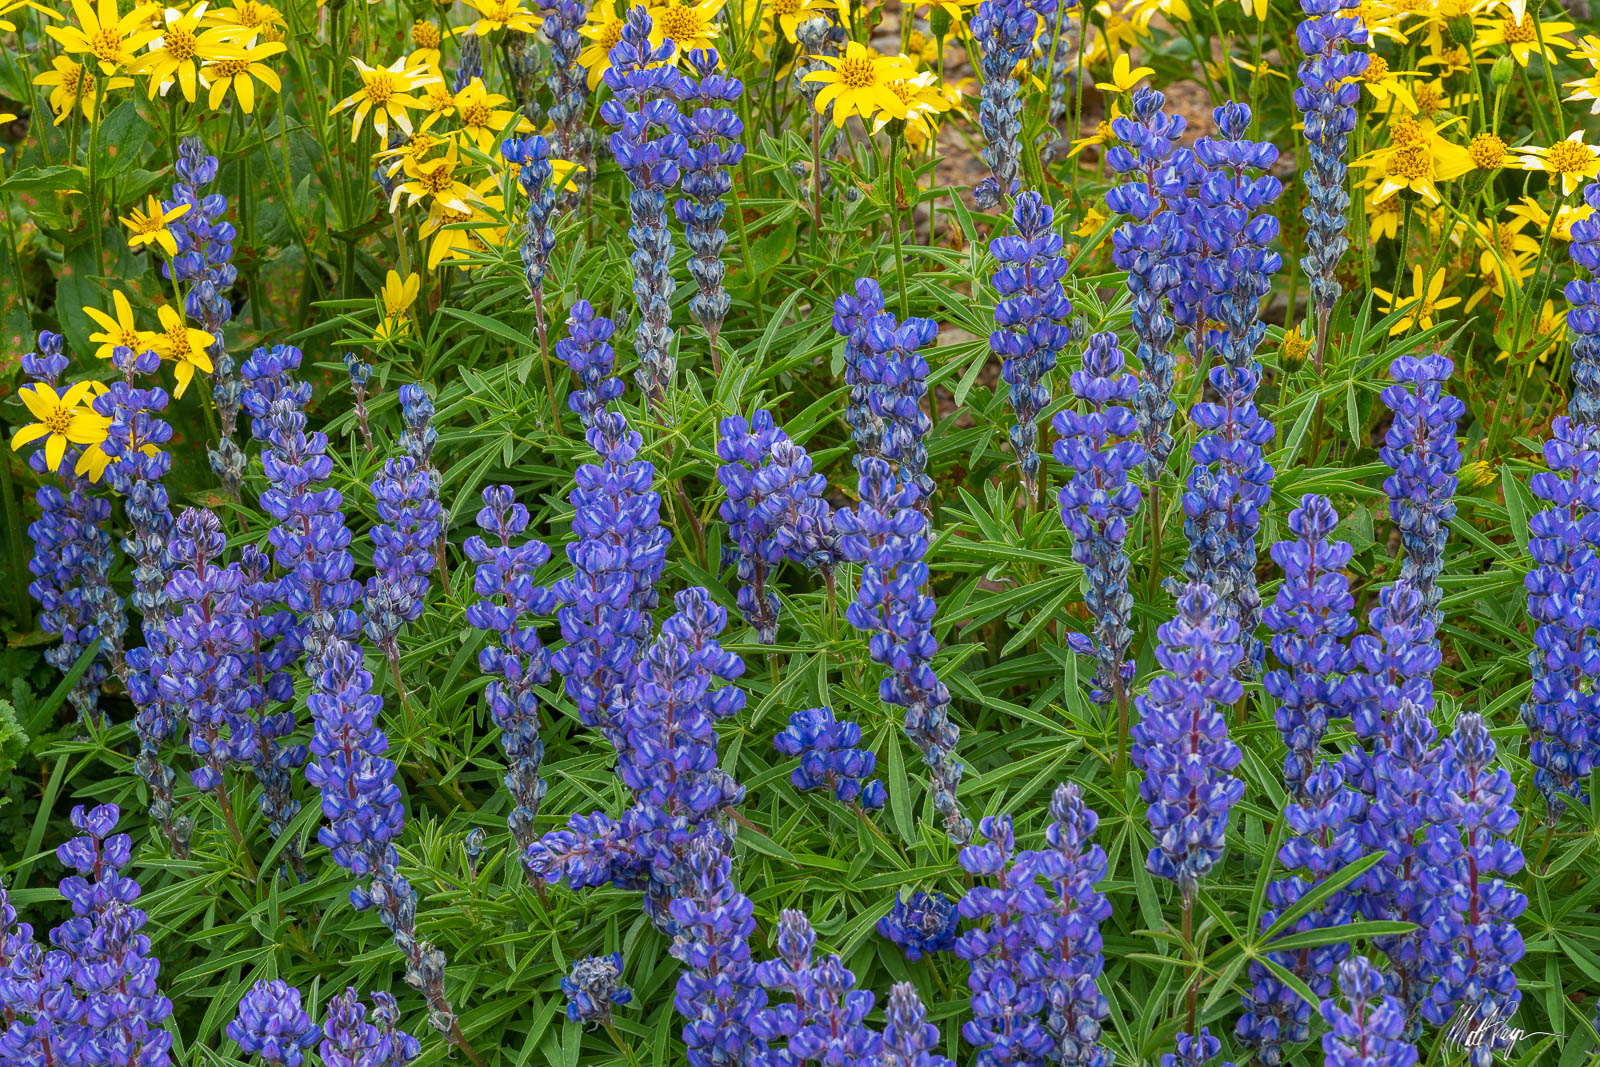 This cluster of flowers showcases one of my favorite purple wildflowers found in the high mountains of Colorado - Silvery Lupine...